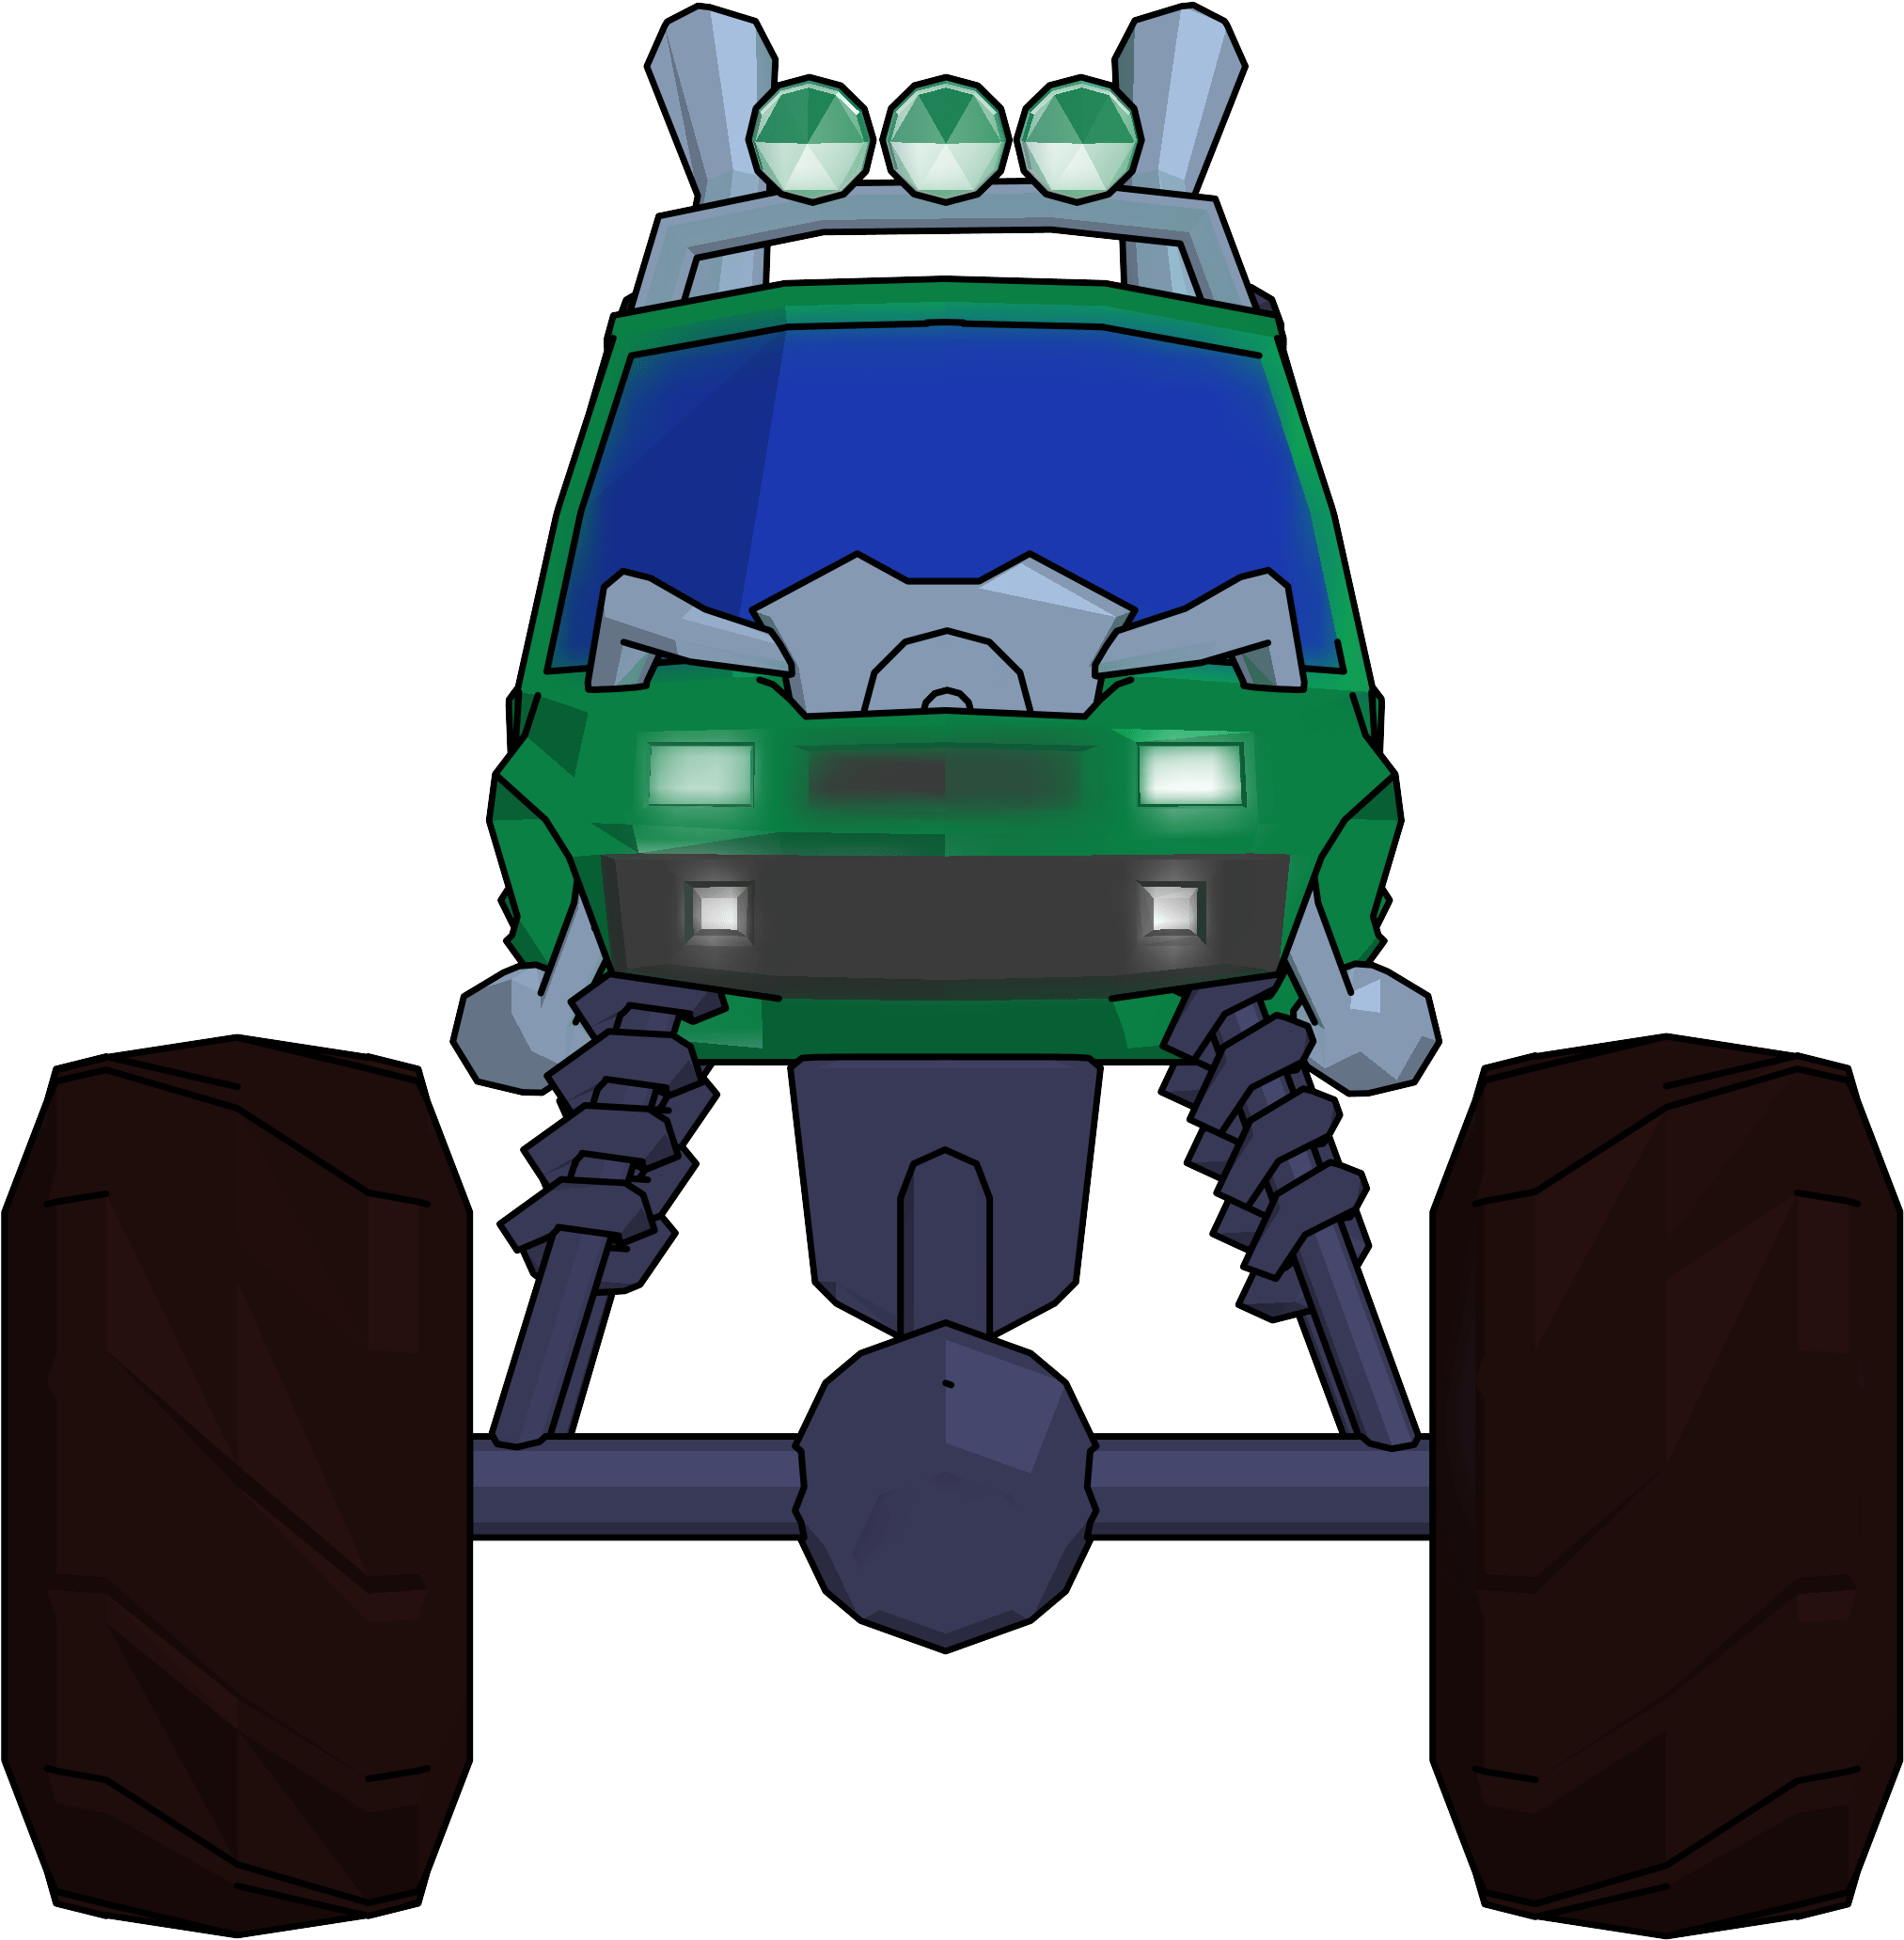 Monster Truck Cartoon Png Clipart Picture Front View Monster Truck Front View Clipart Transparent Png Full Size Clipart 3408721 Pinclipart